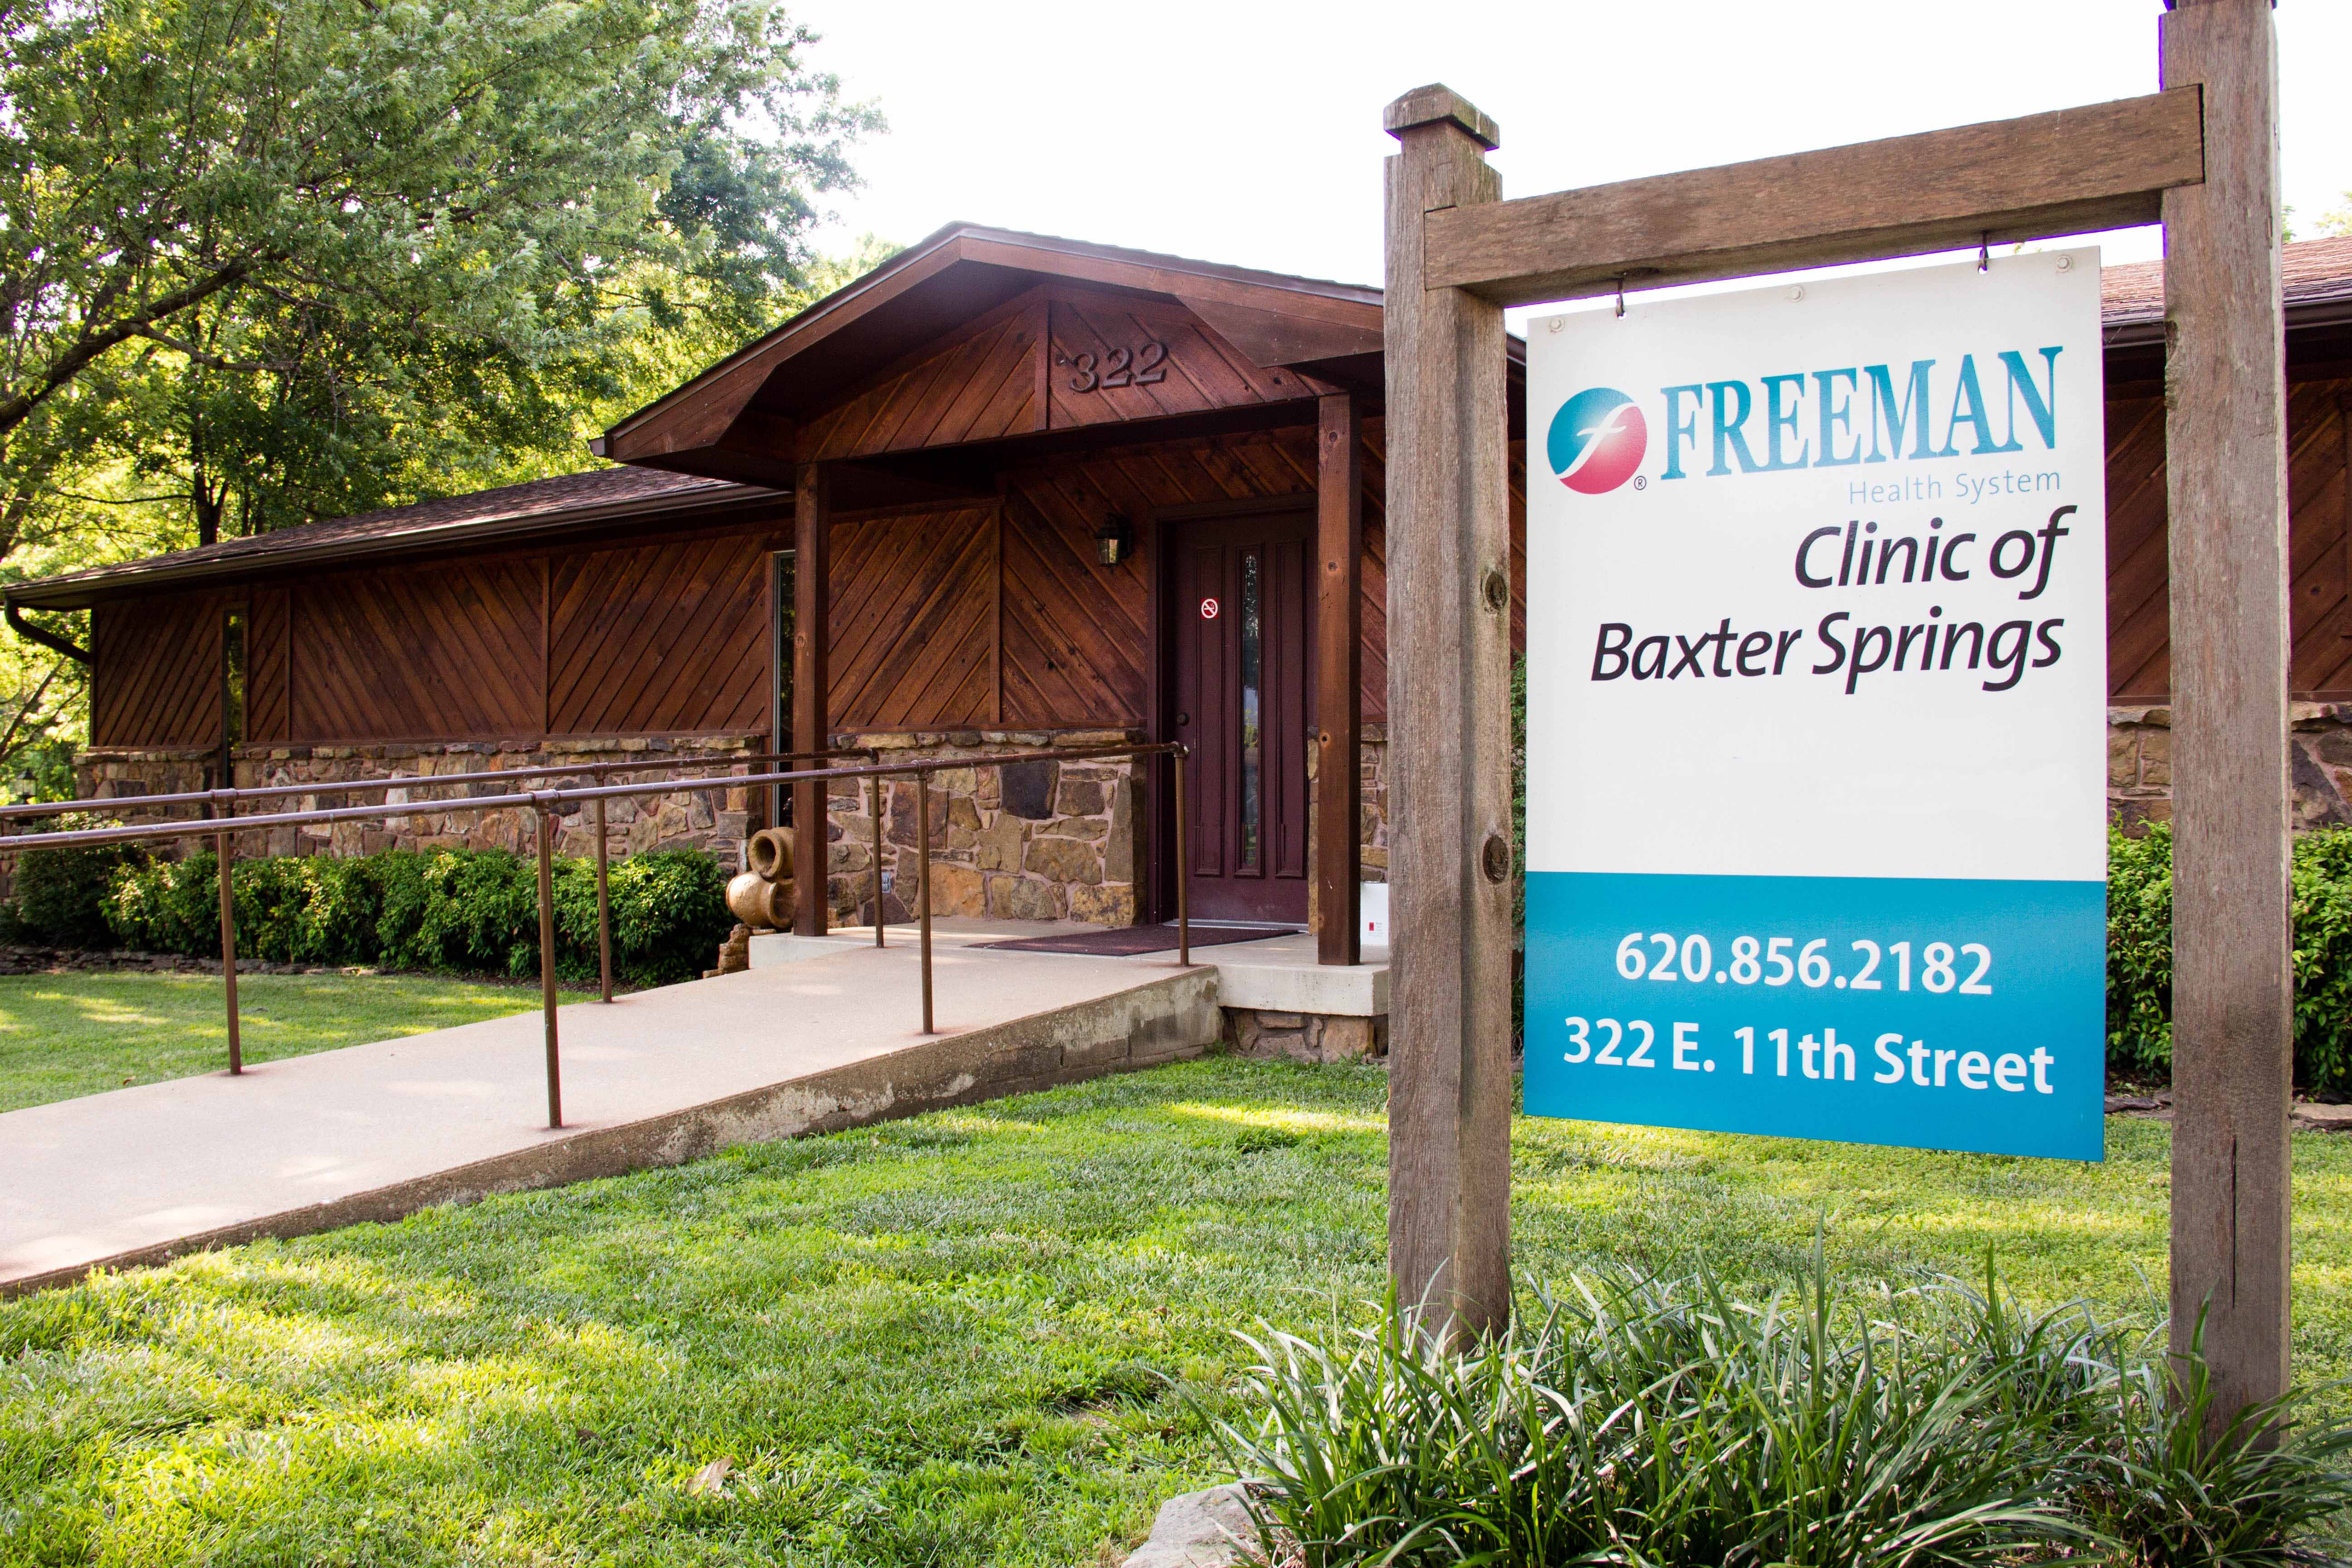 Freeman Clinic of Baxter Springs